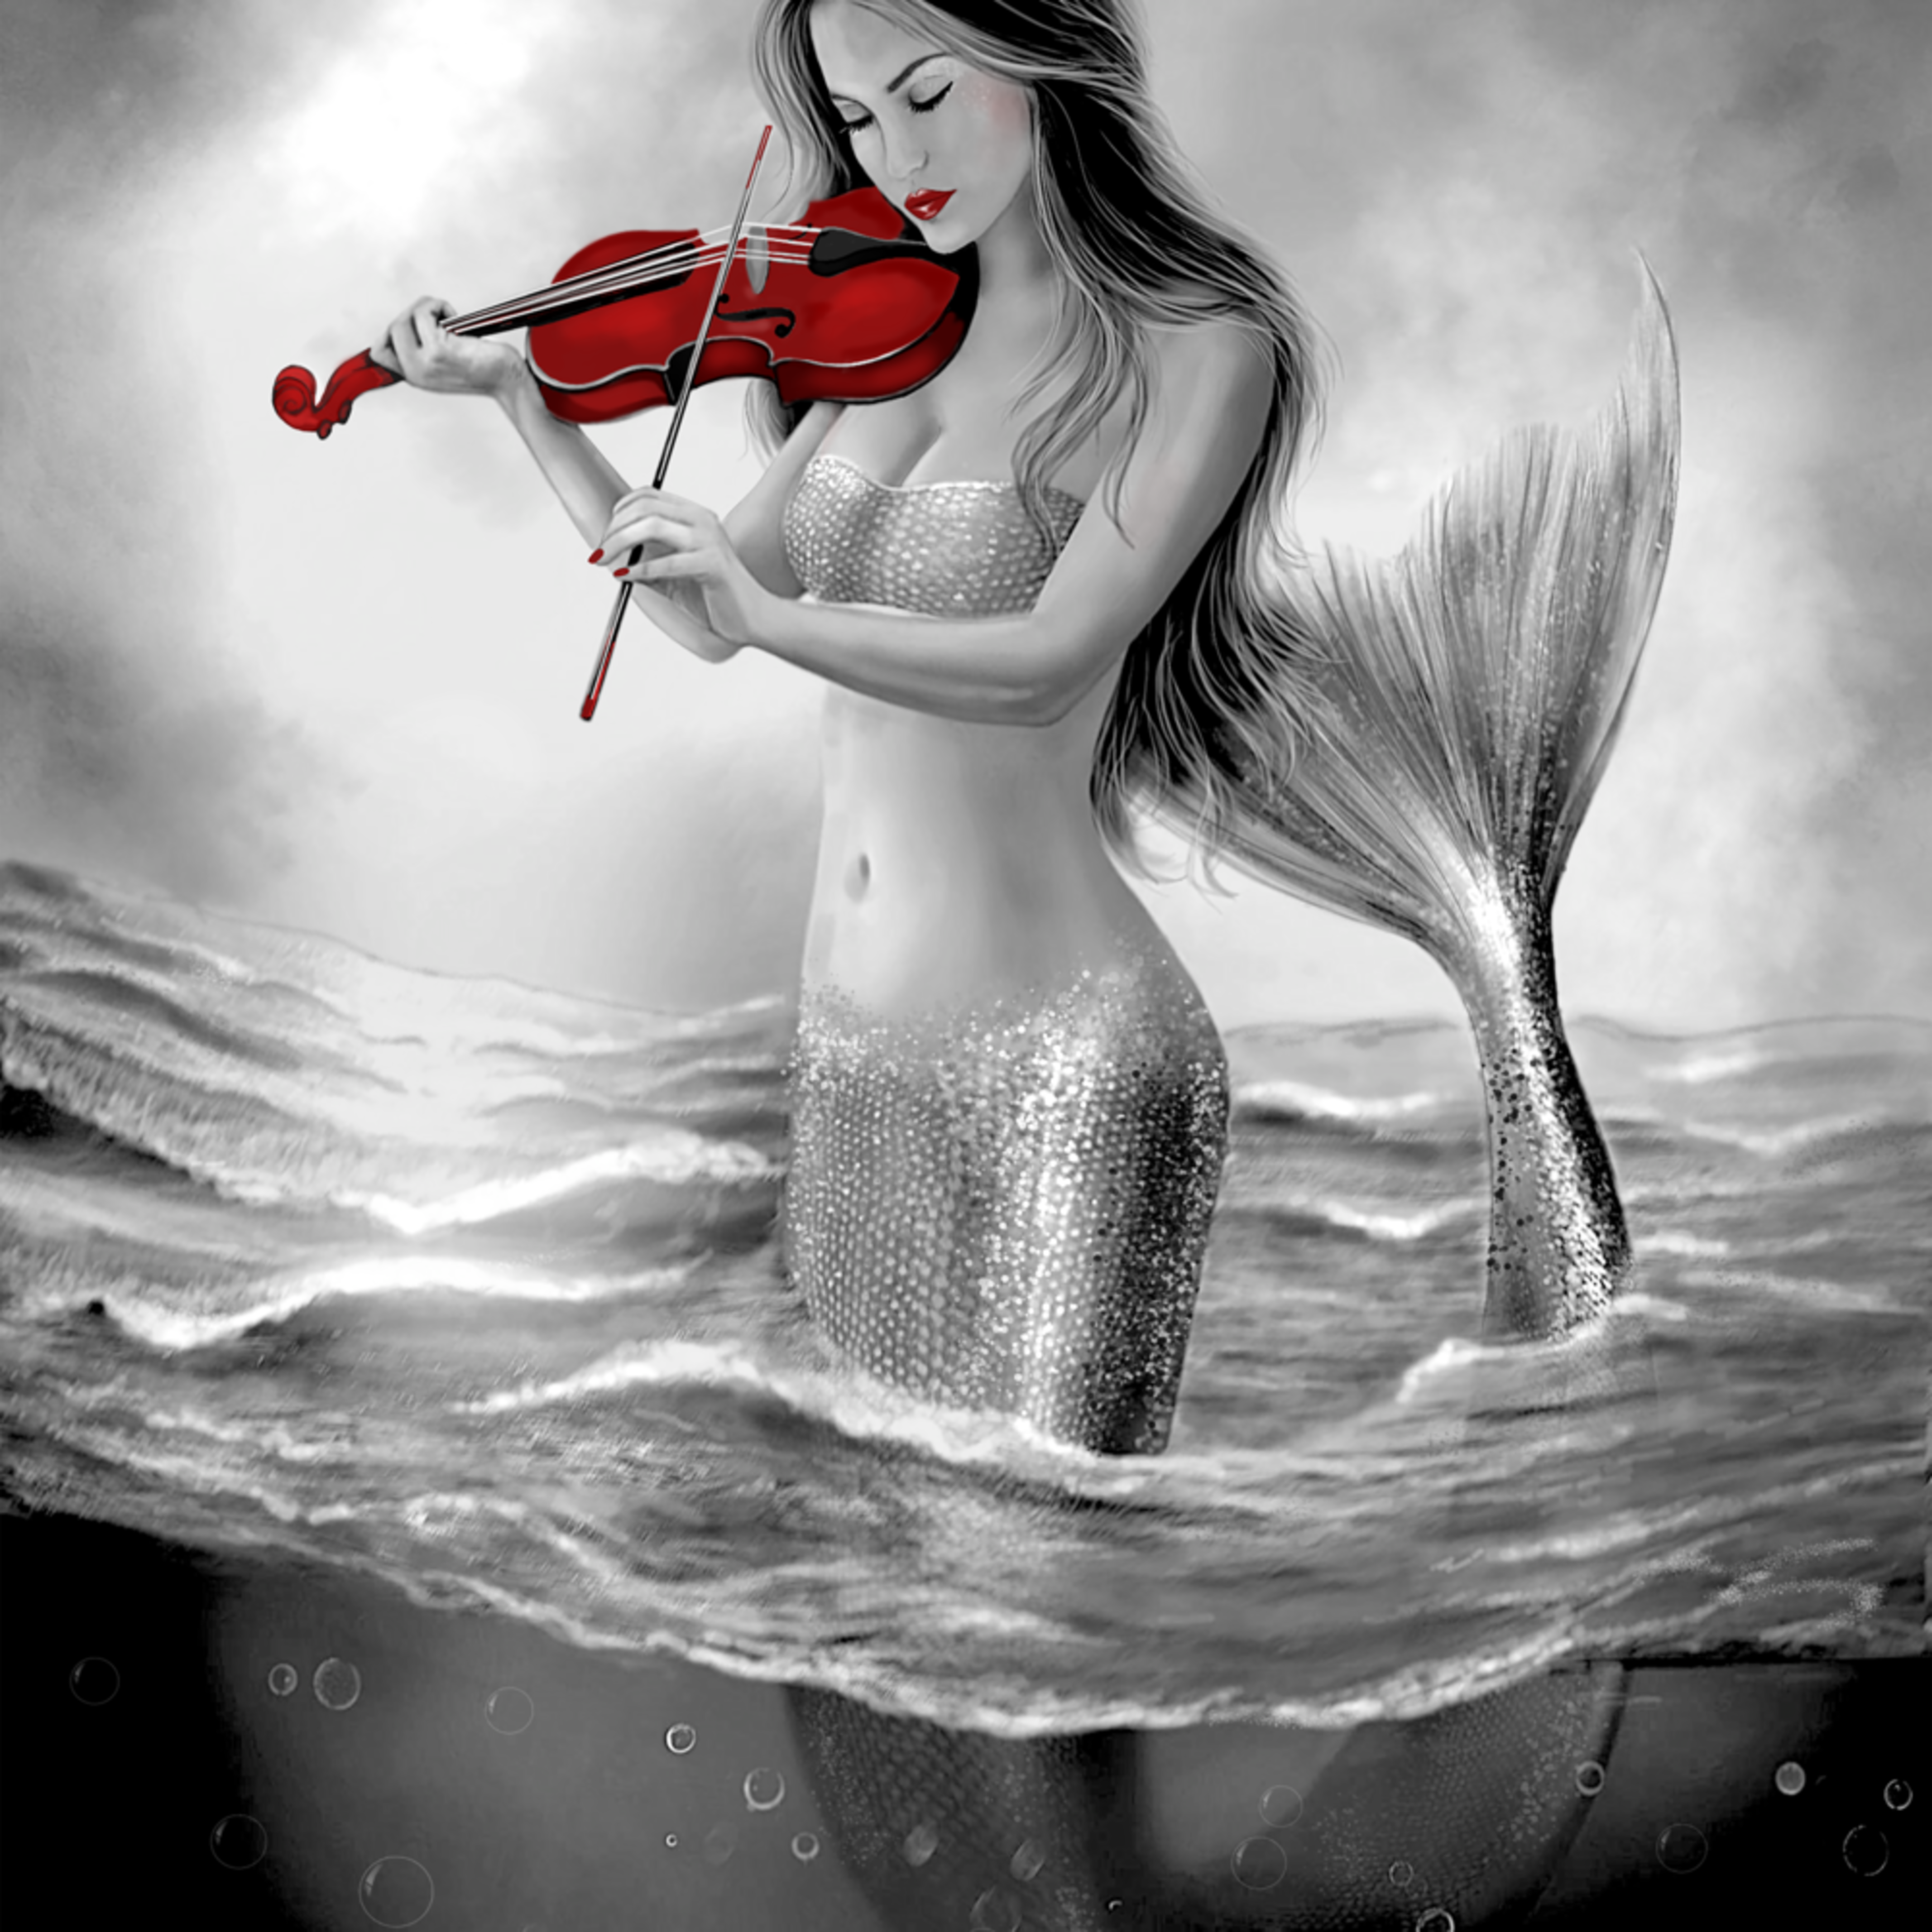 The red violin r7luzl